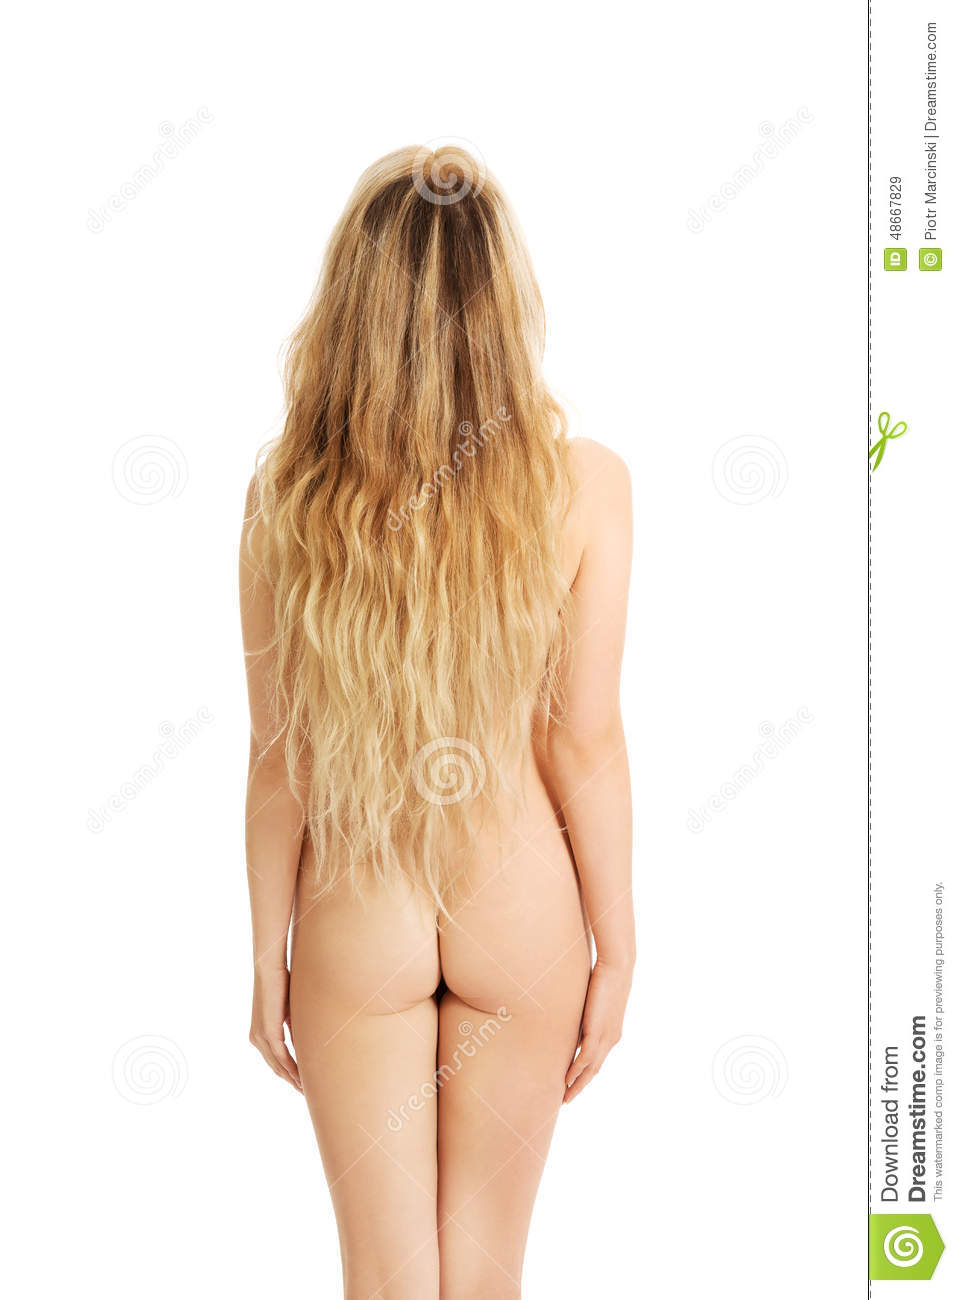 Free to view picture of naked woman